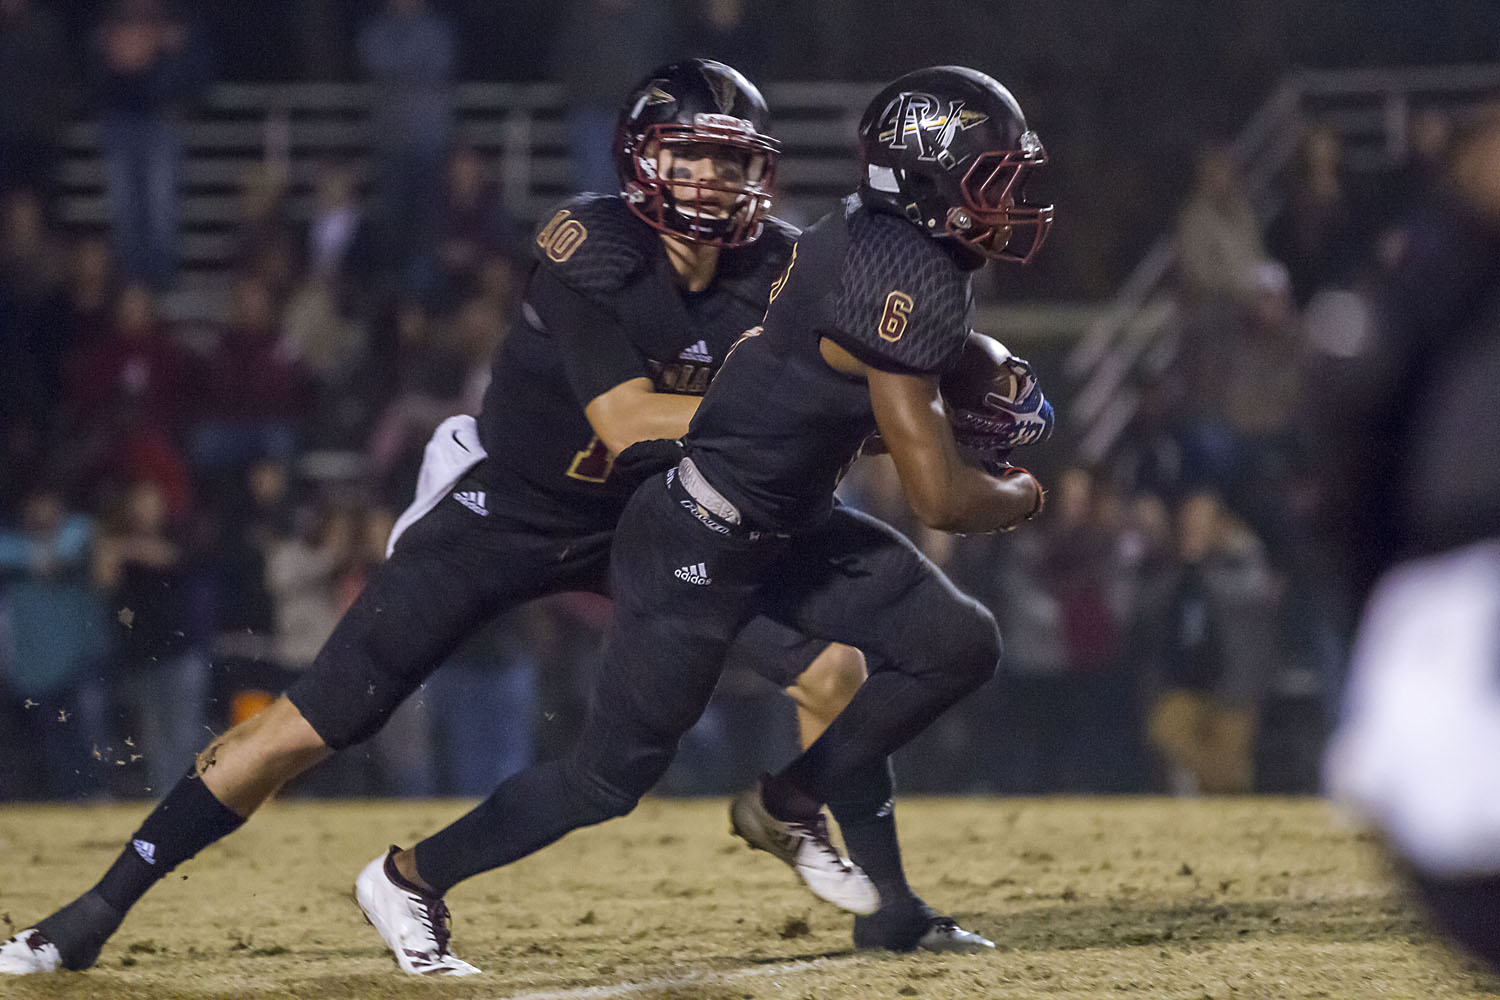 Pinson Valley 1 win away from state title, perfect season